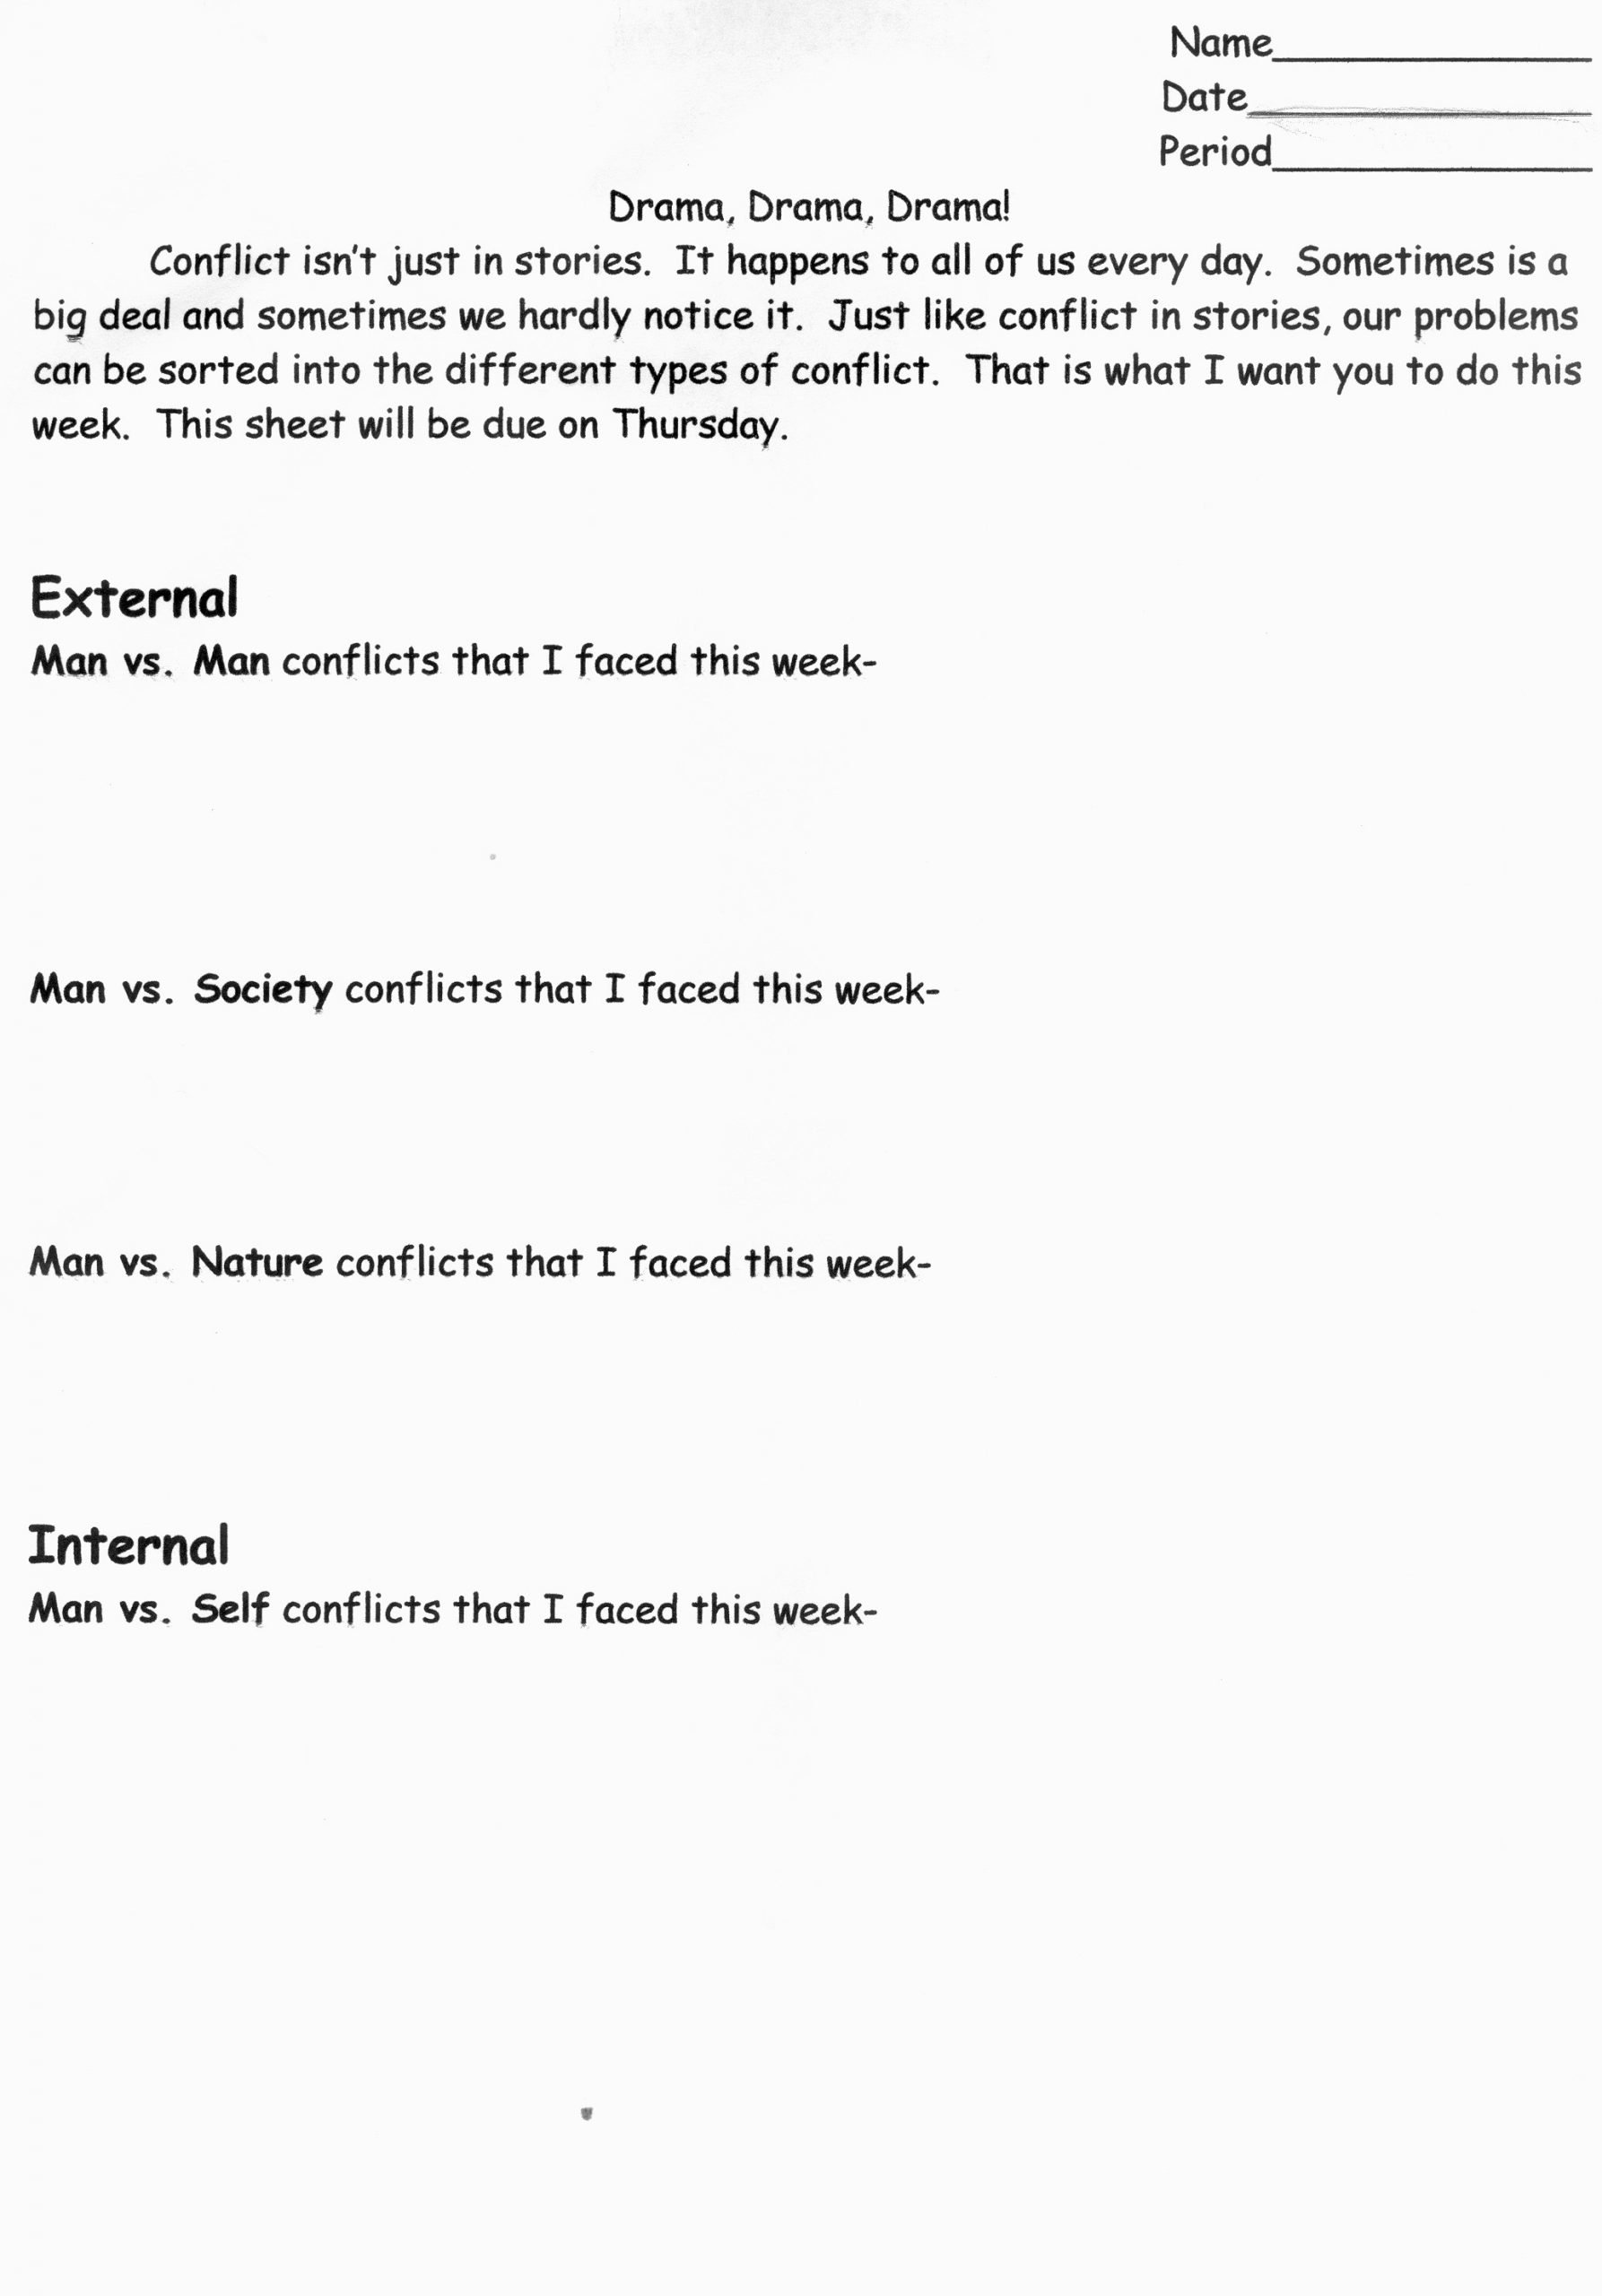 Conflict Resolution Worksheets for Students 6th Grade Lessons Middle School Language Arts Help